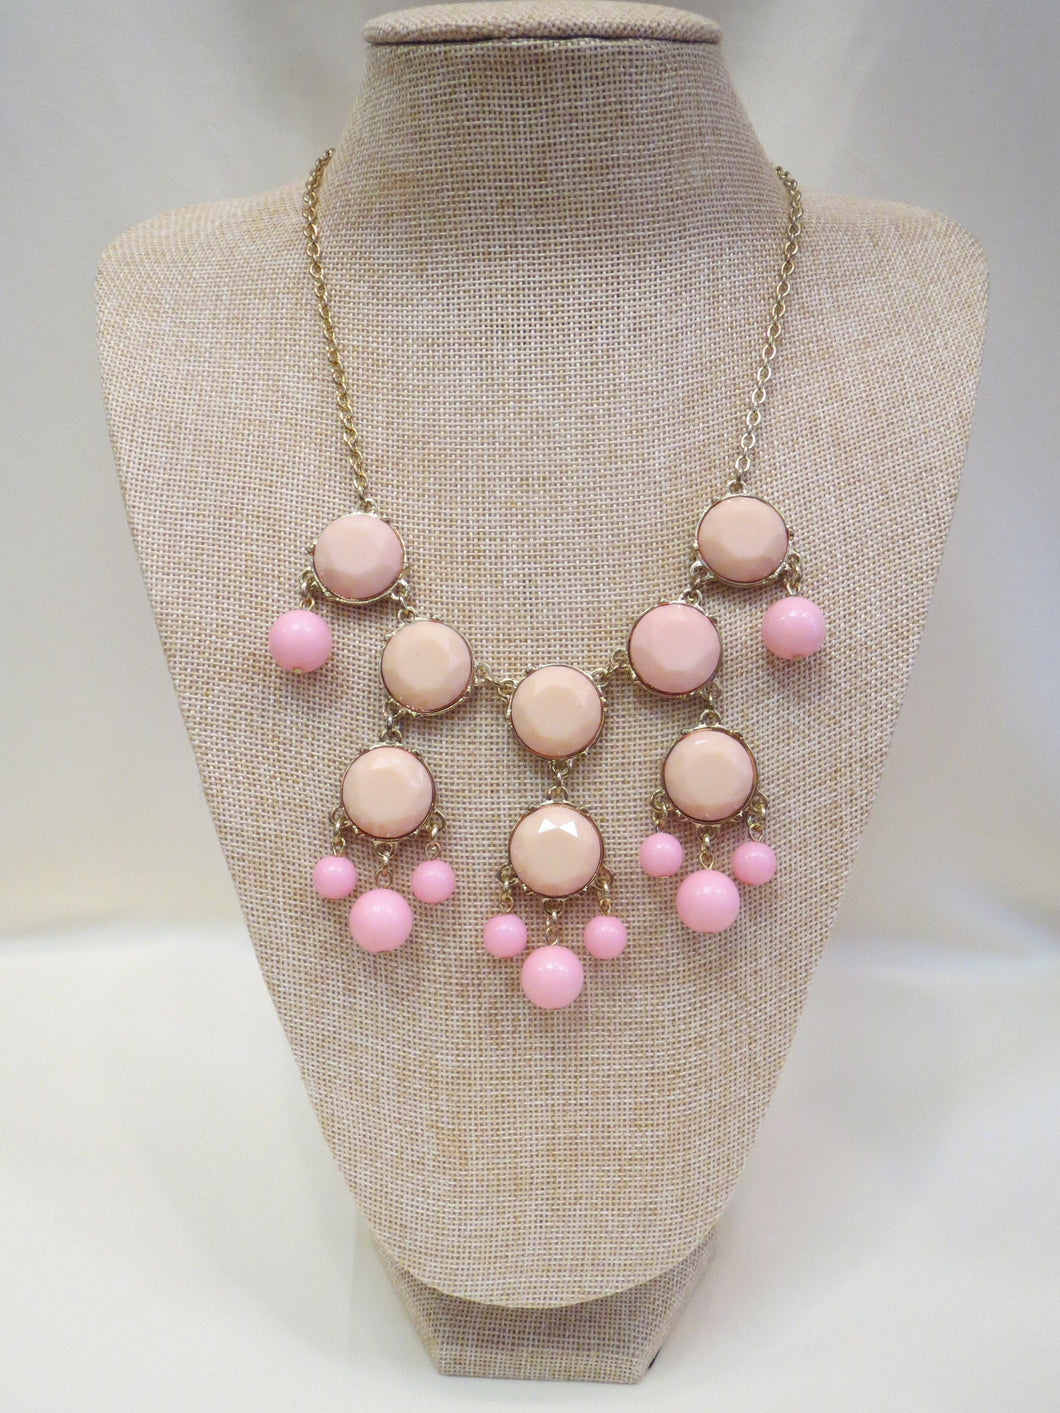 ADO | Bubble Necklace Two-Tone Baby Pink - All Decd Out